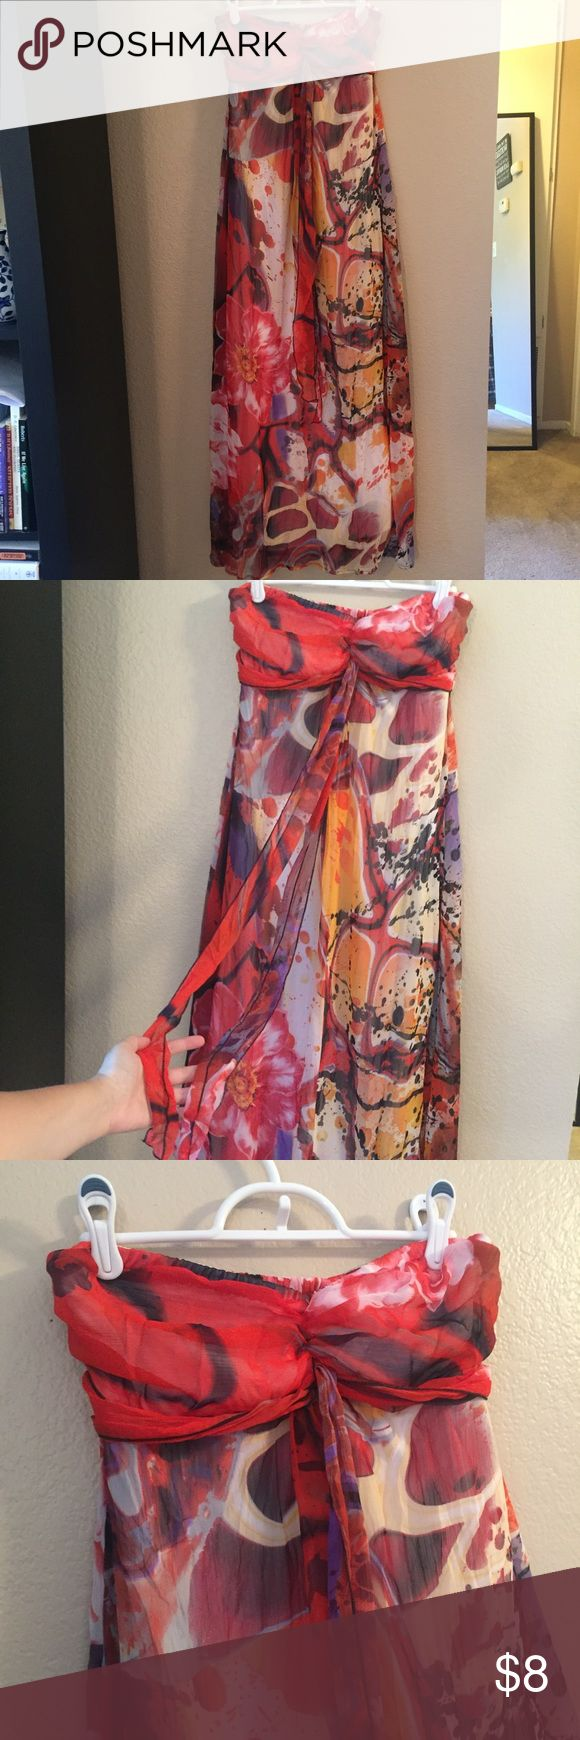 Strapless Red Dress with stunning pattern This gorgeous strapless, maxi dress looks great with some sandals or a jean jacket. Only wore it once or twice so it's in great condition. Has a chiffon overlay with a nude colored slip inside. Xhilaration Dresses Strapless